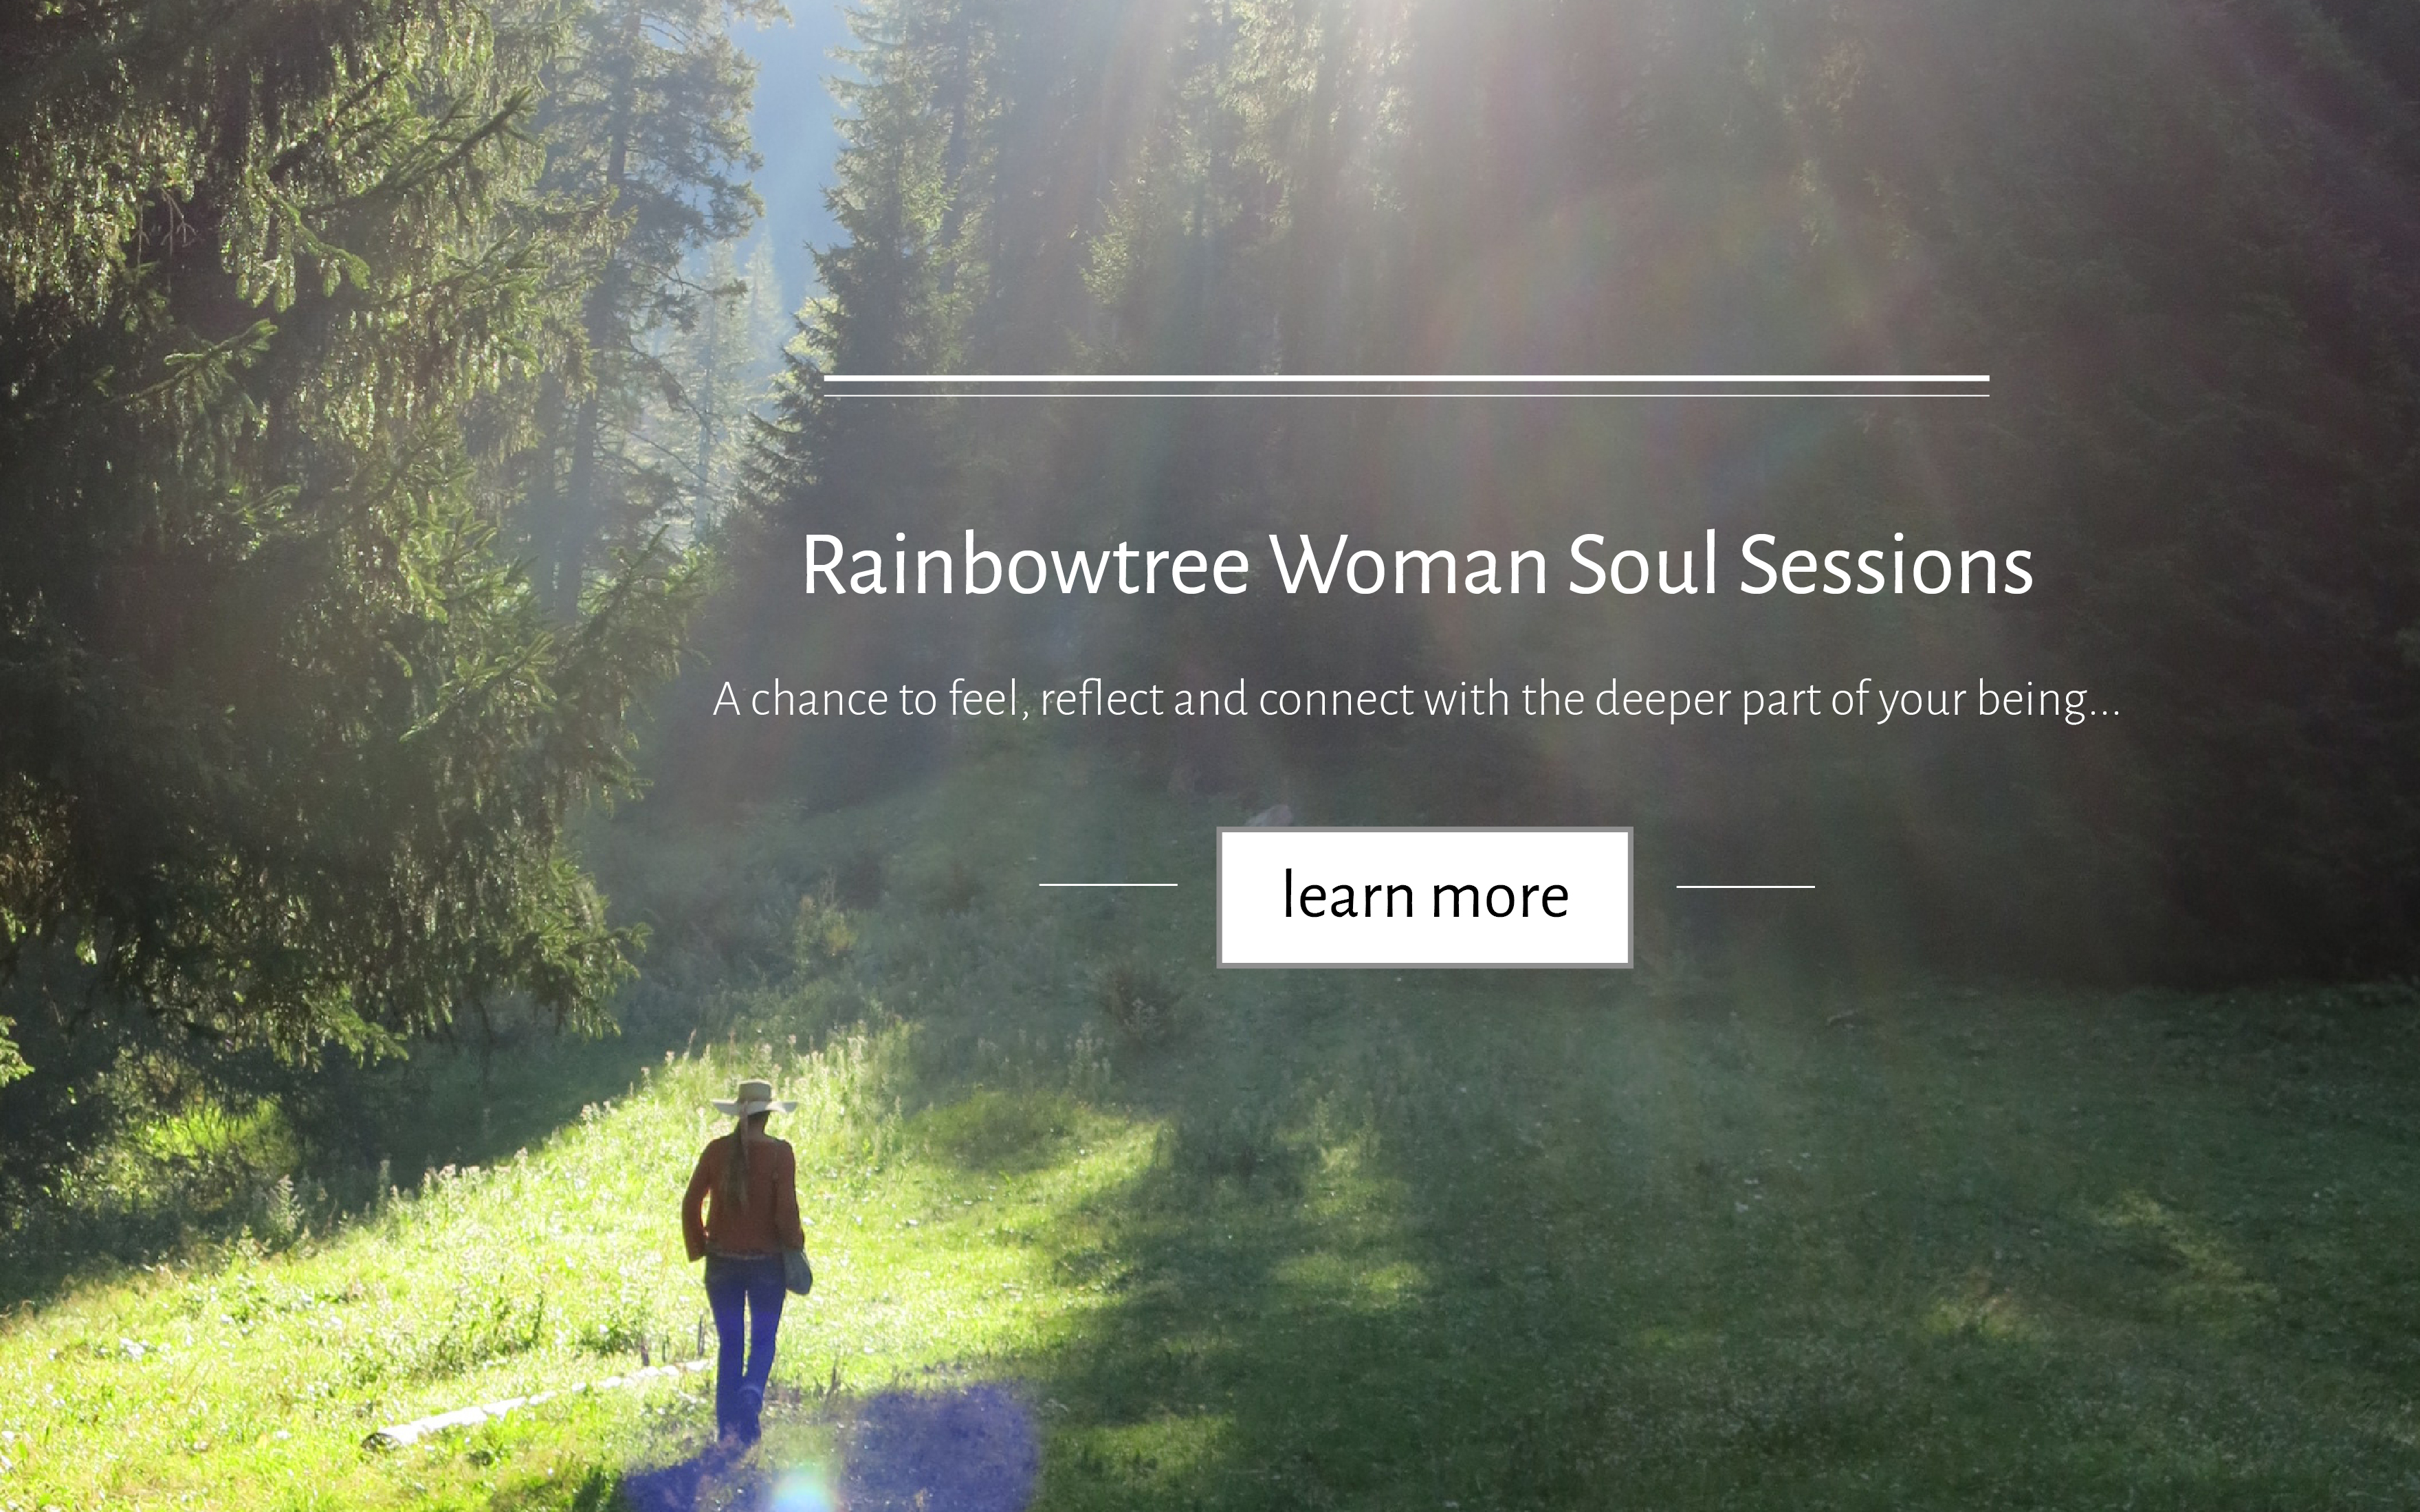 rainbowtreewomansoulsessions